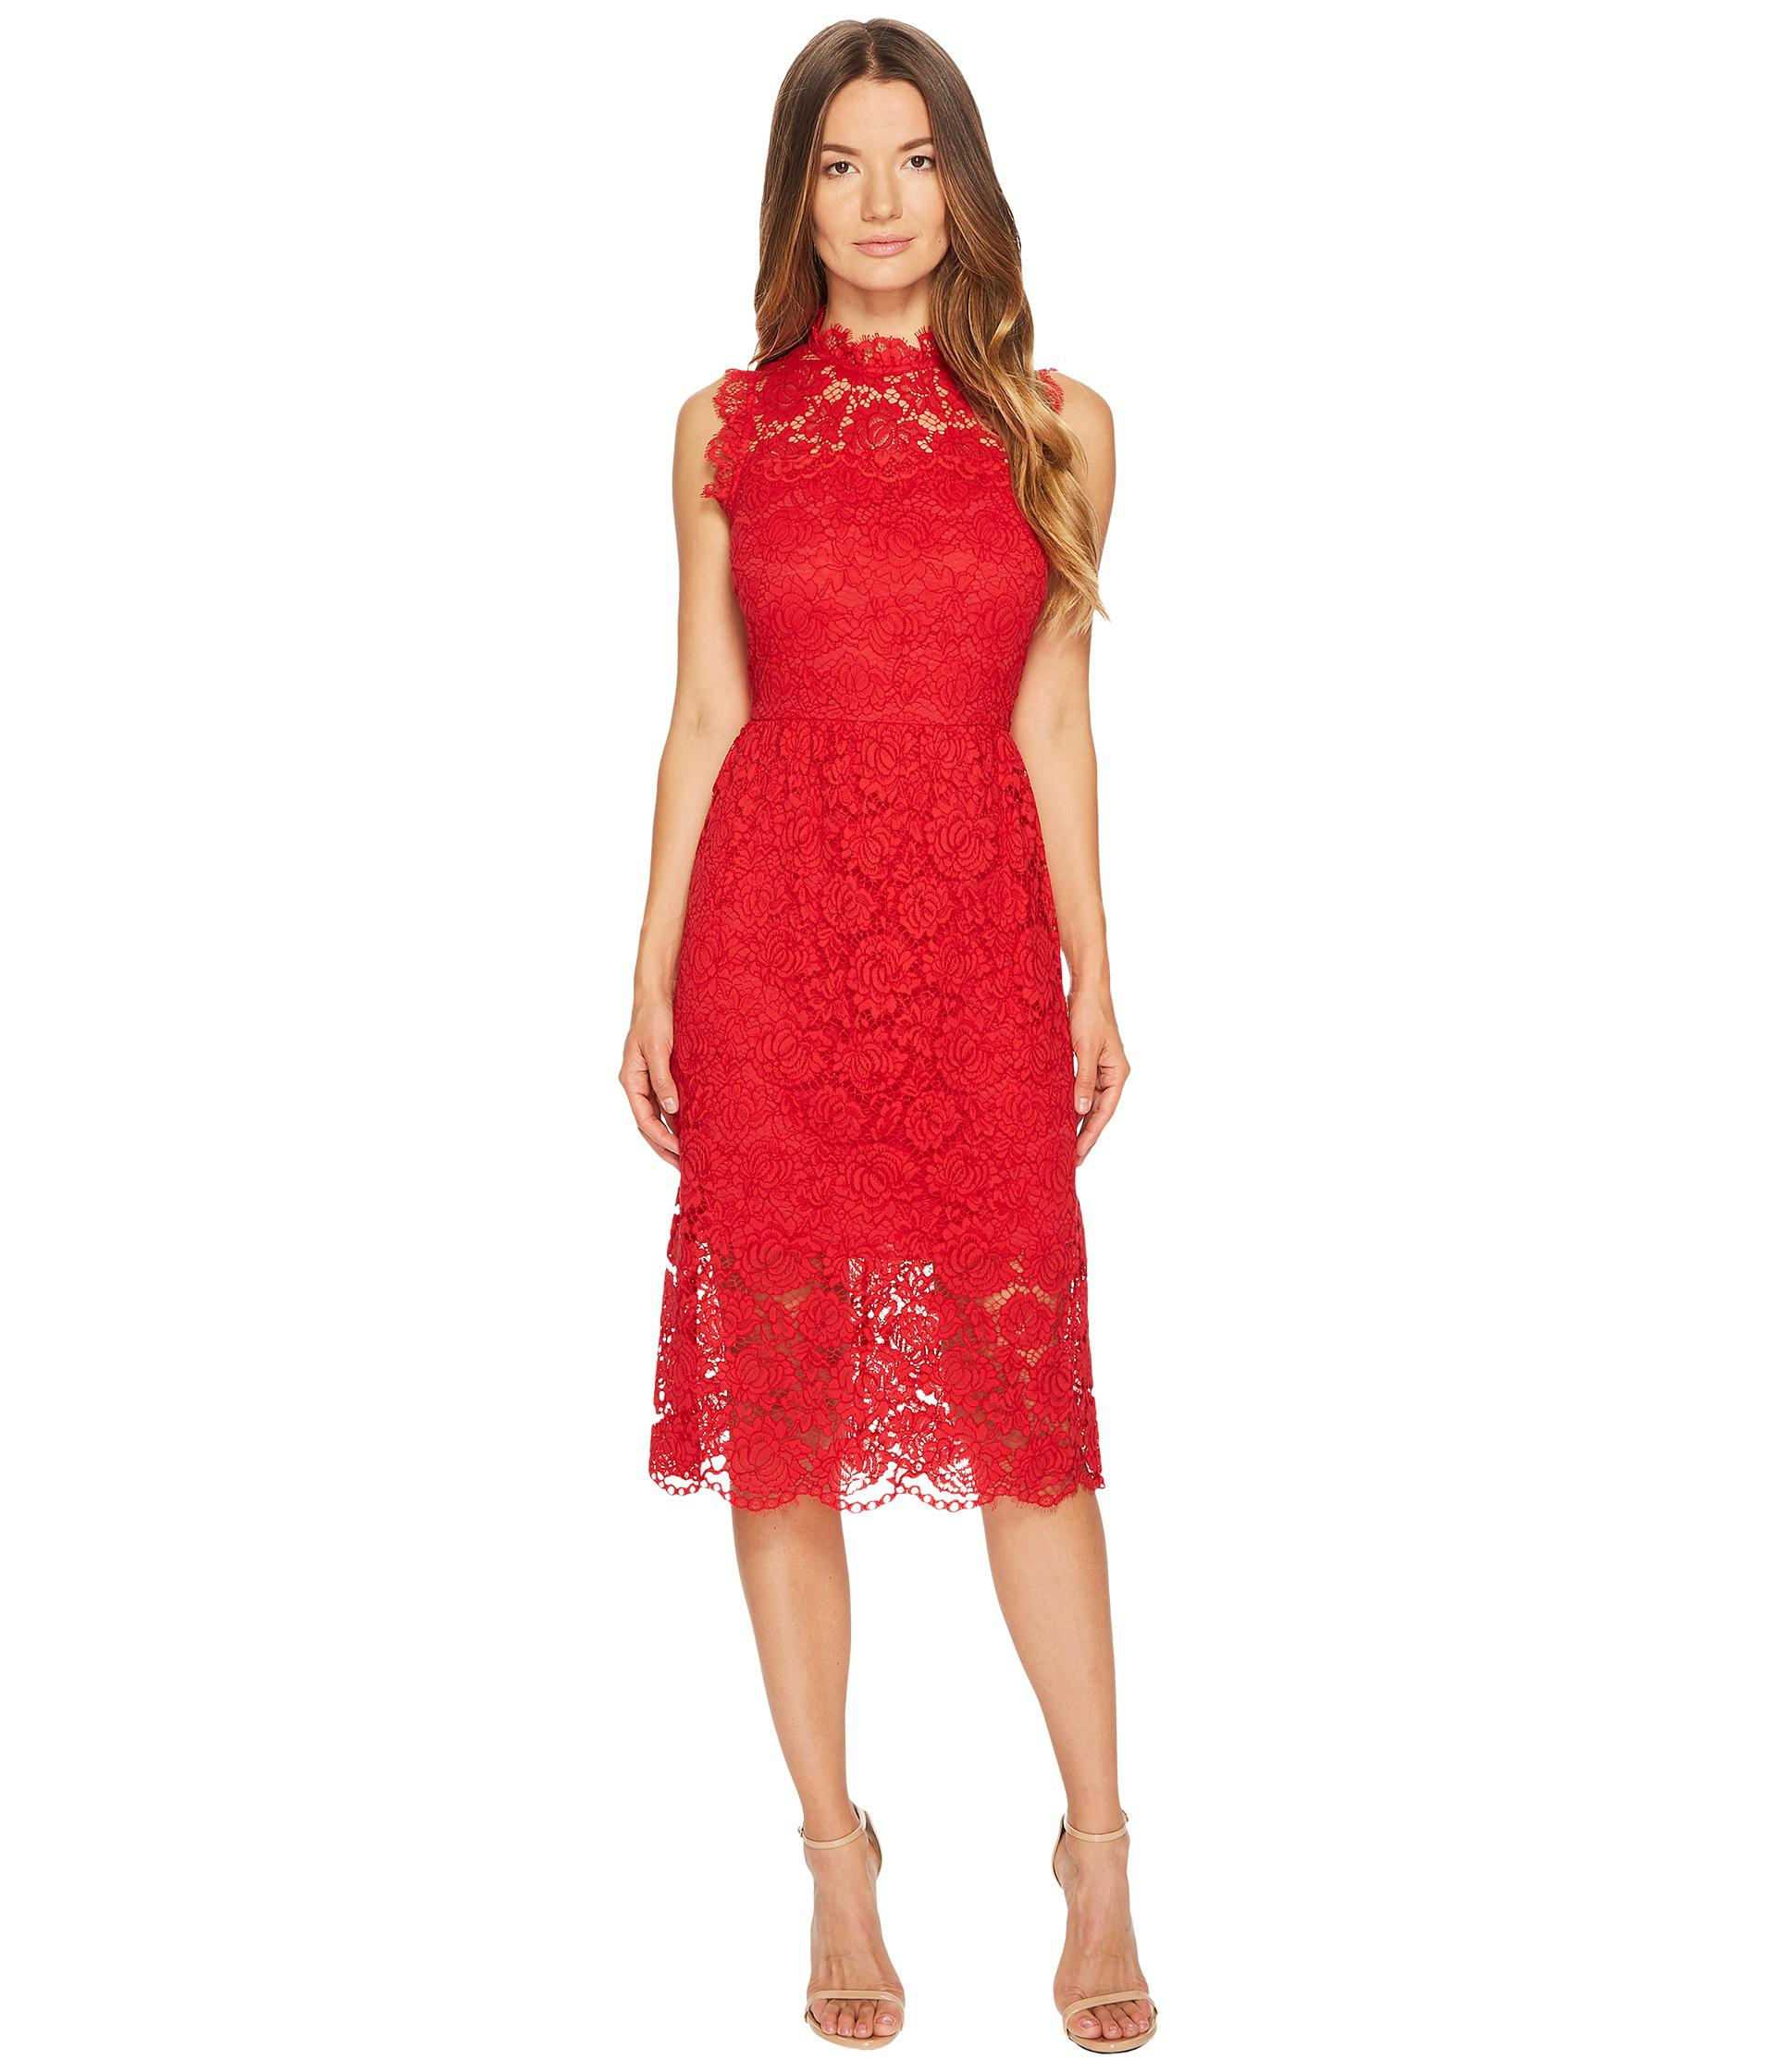 653bf3b8d93 Kate Spade Poppy Lace Midi Dress in Red - Lyst